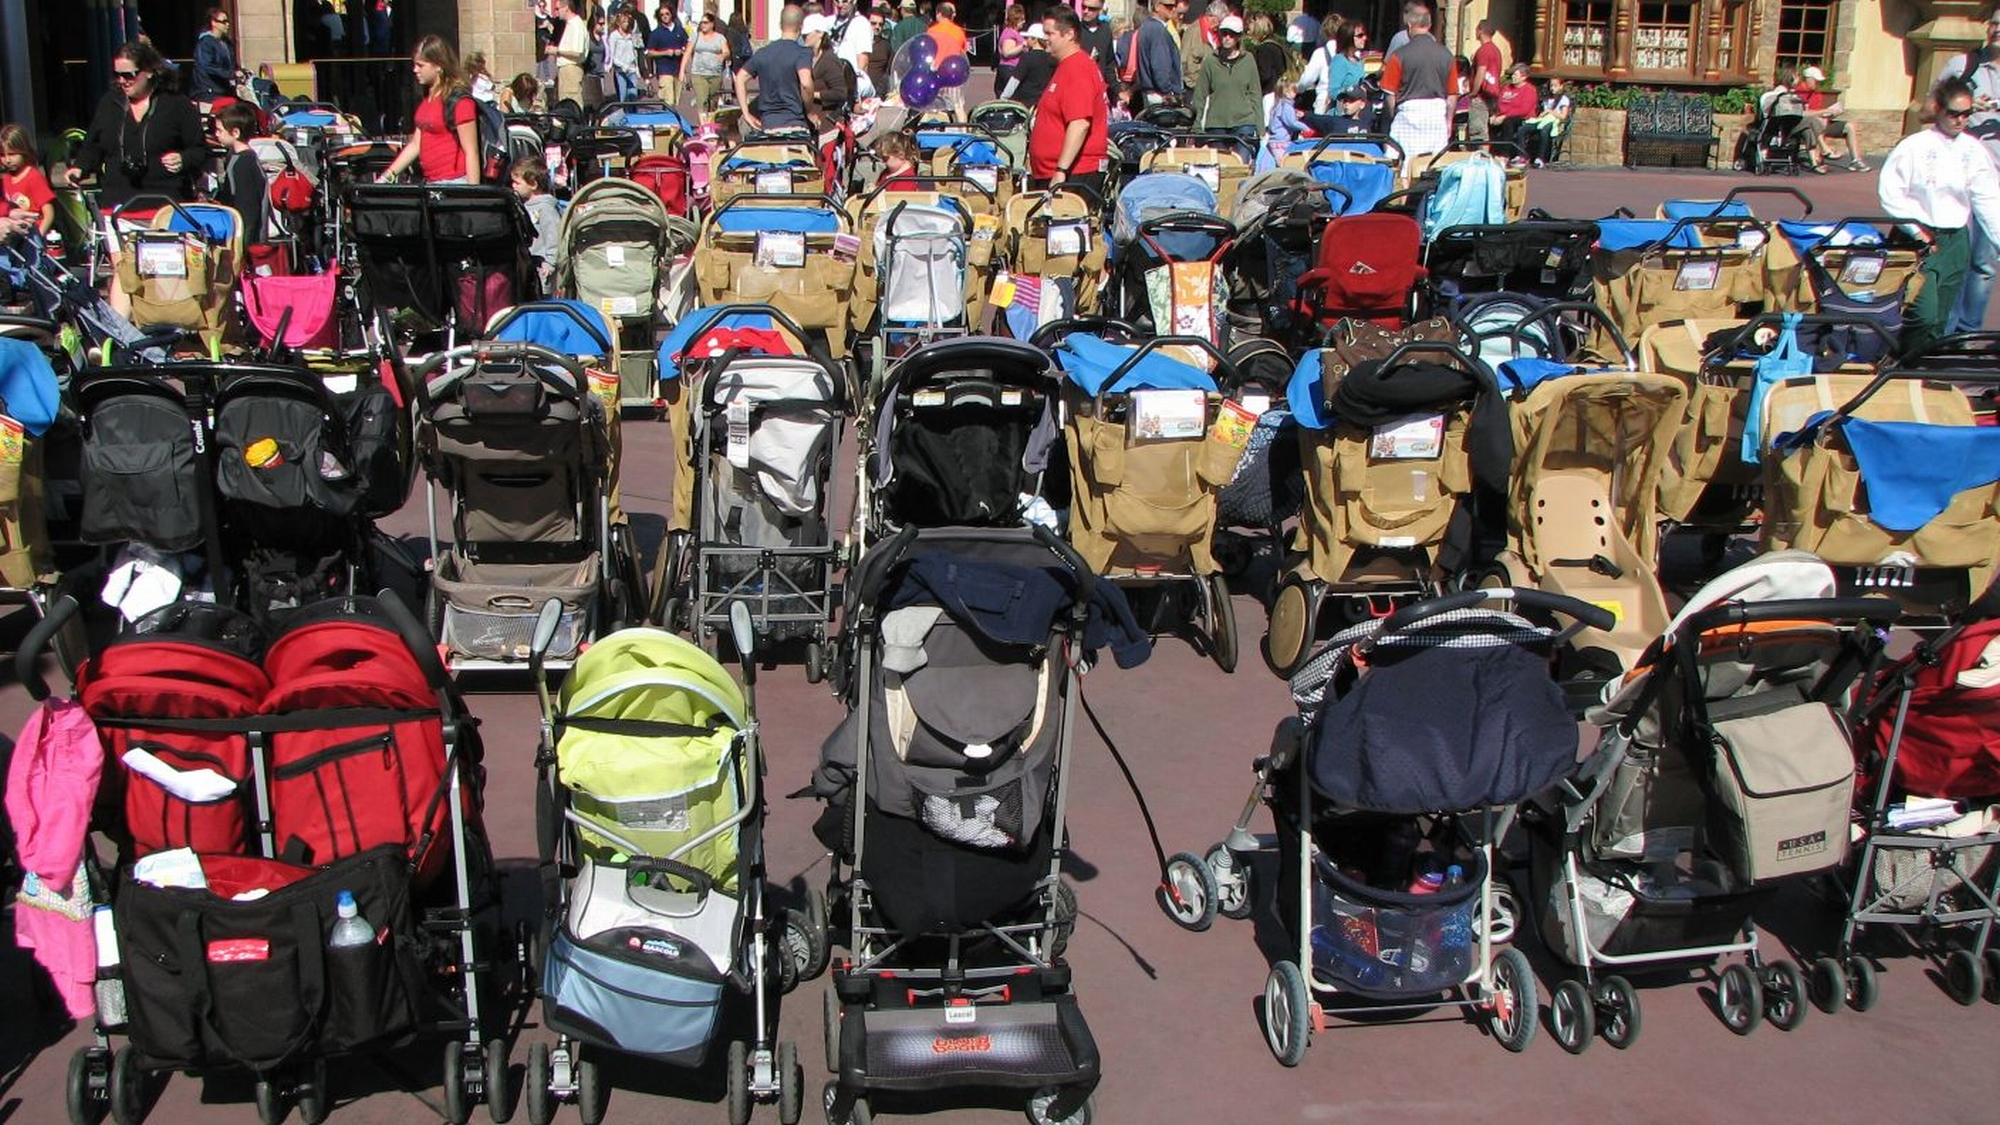 Magic Kingdom - Stroller-land